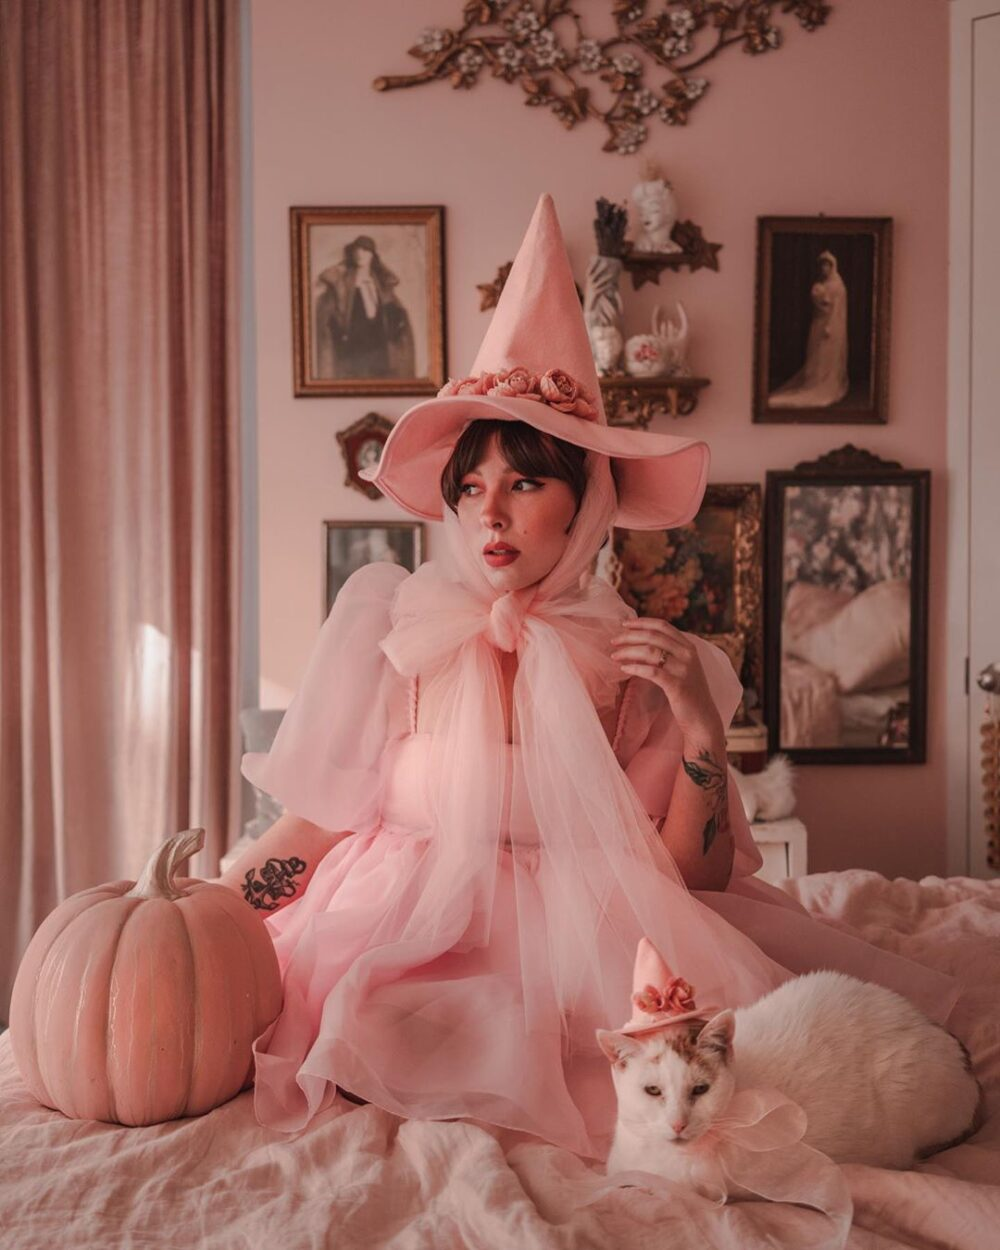 15 Amazing and Cute Instagram Costumes to Inspire You This Halloween